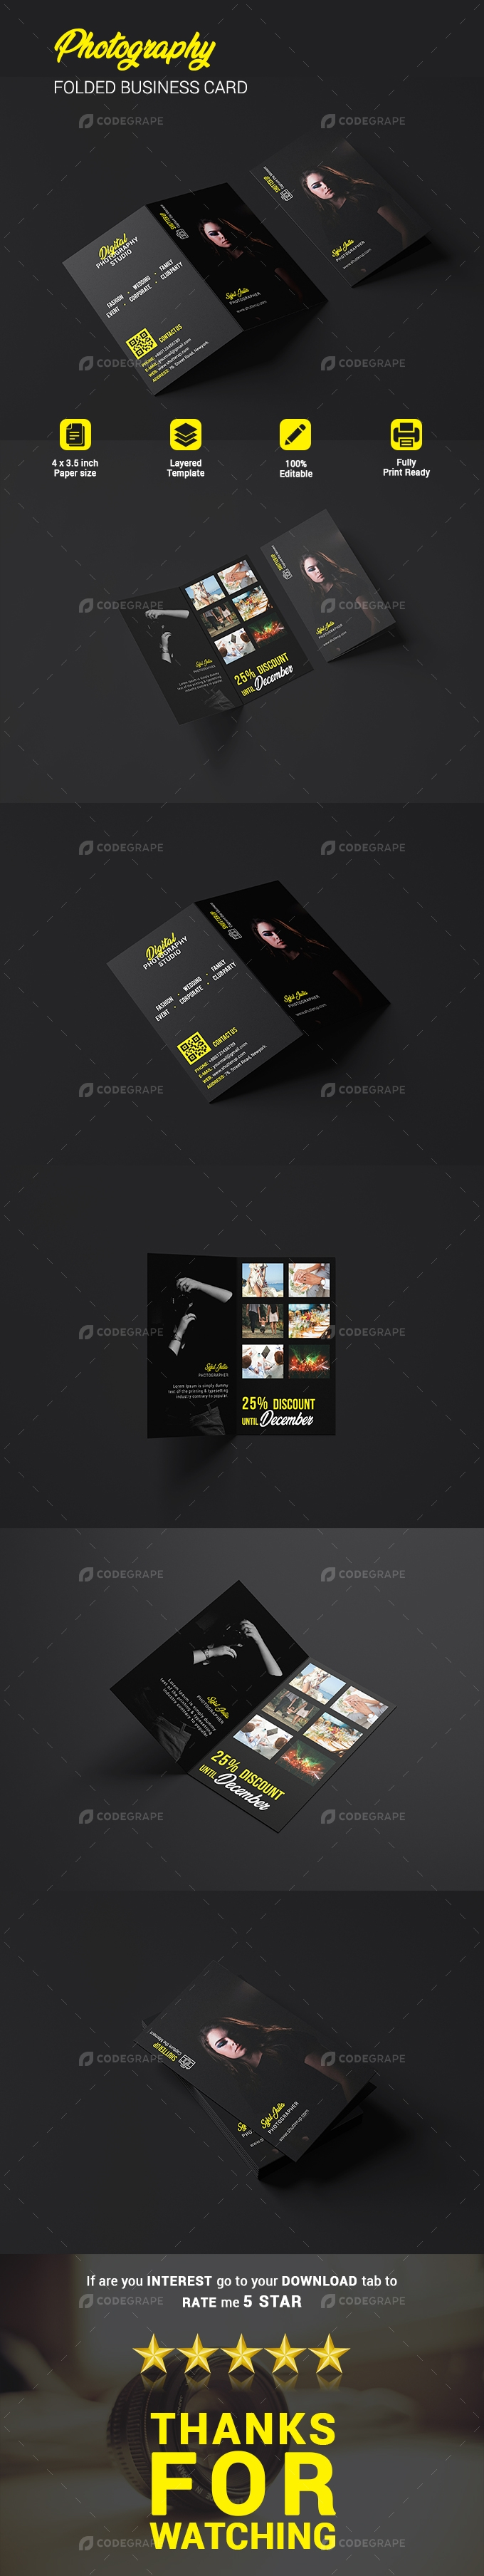 Photography Folded Business Card